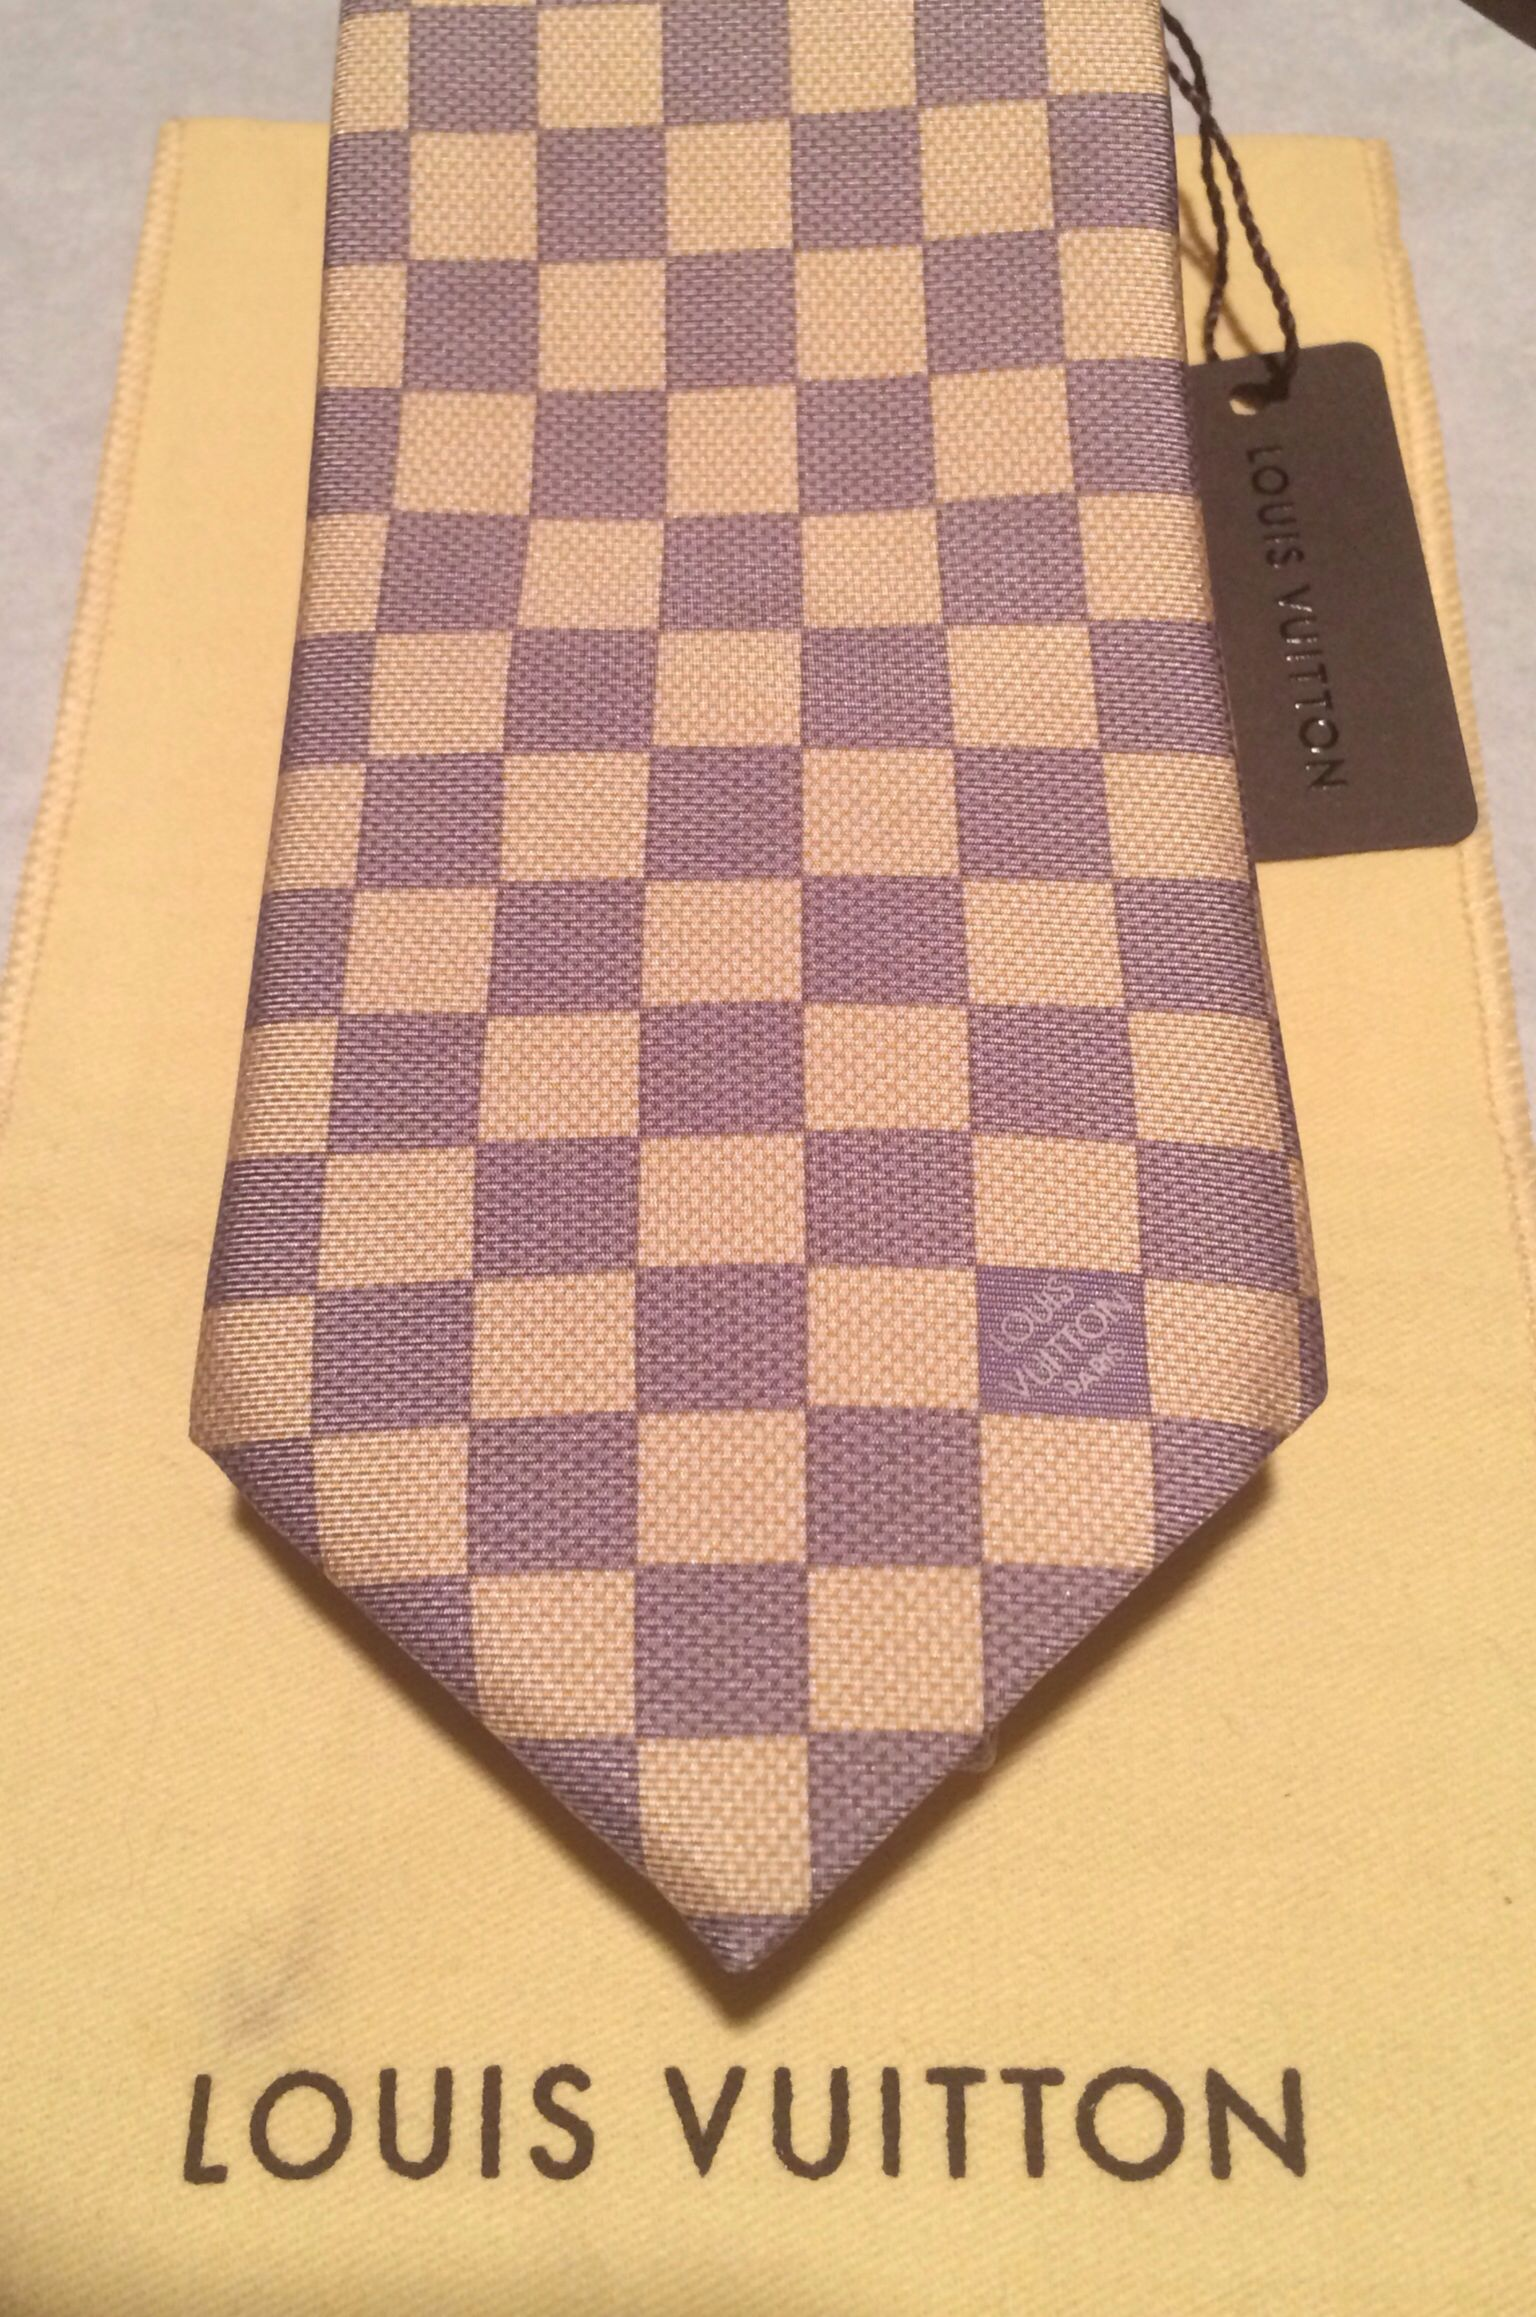 Louis Vuitton TAN DAMIER Tie